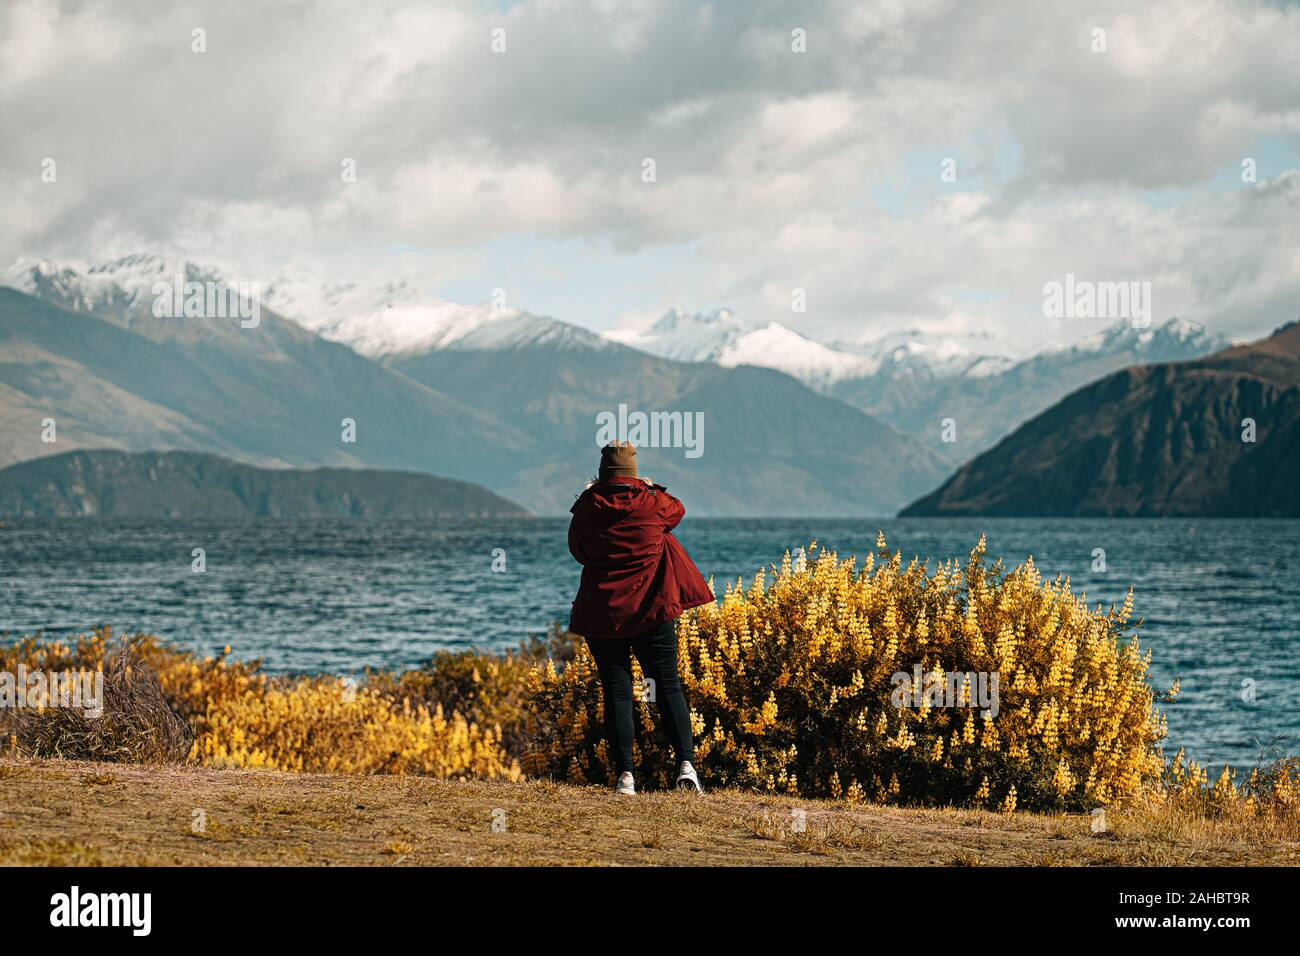 Person in front of yellow flowers with lake in background Stock Photo